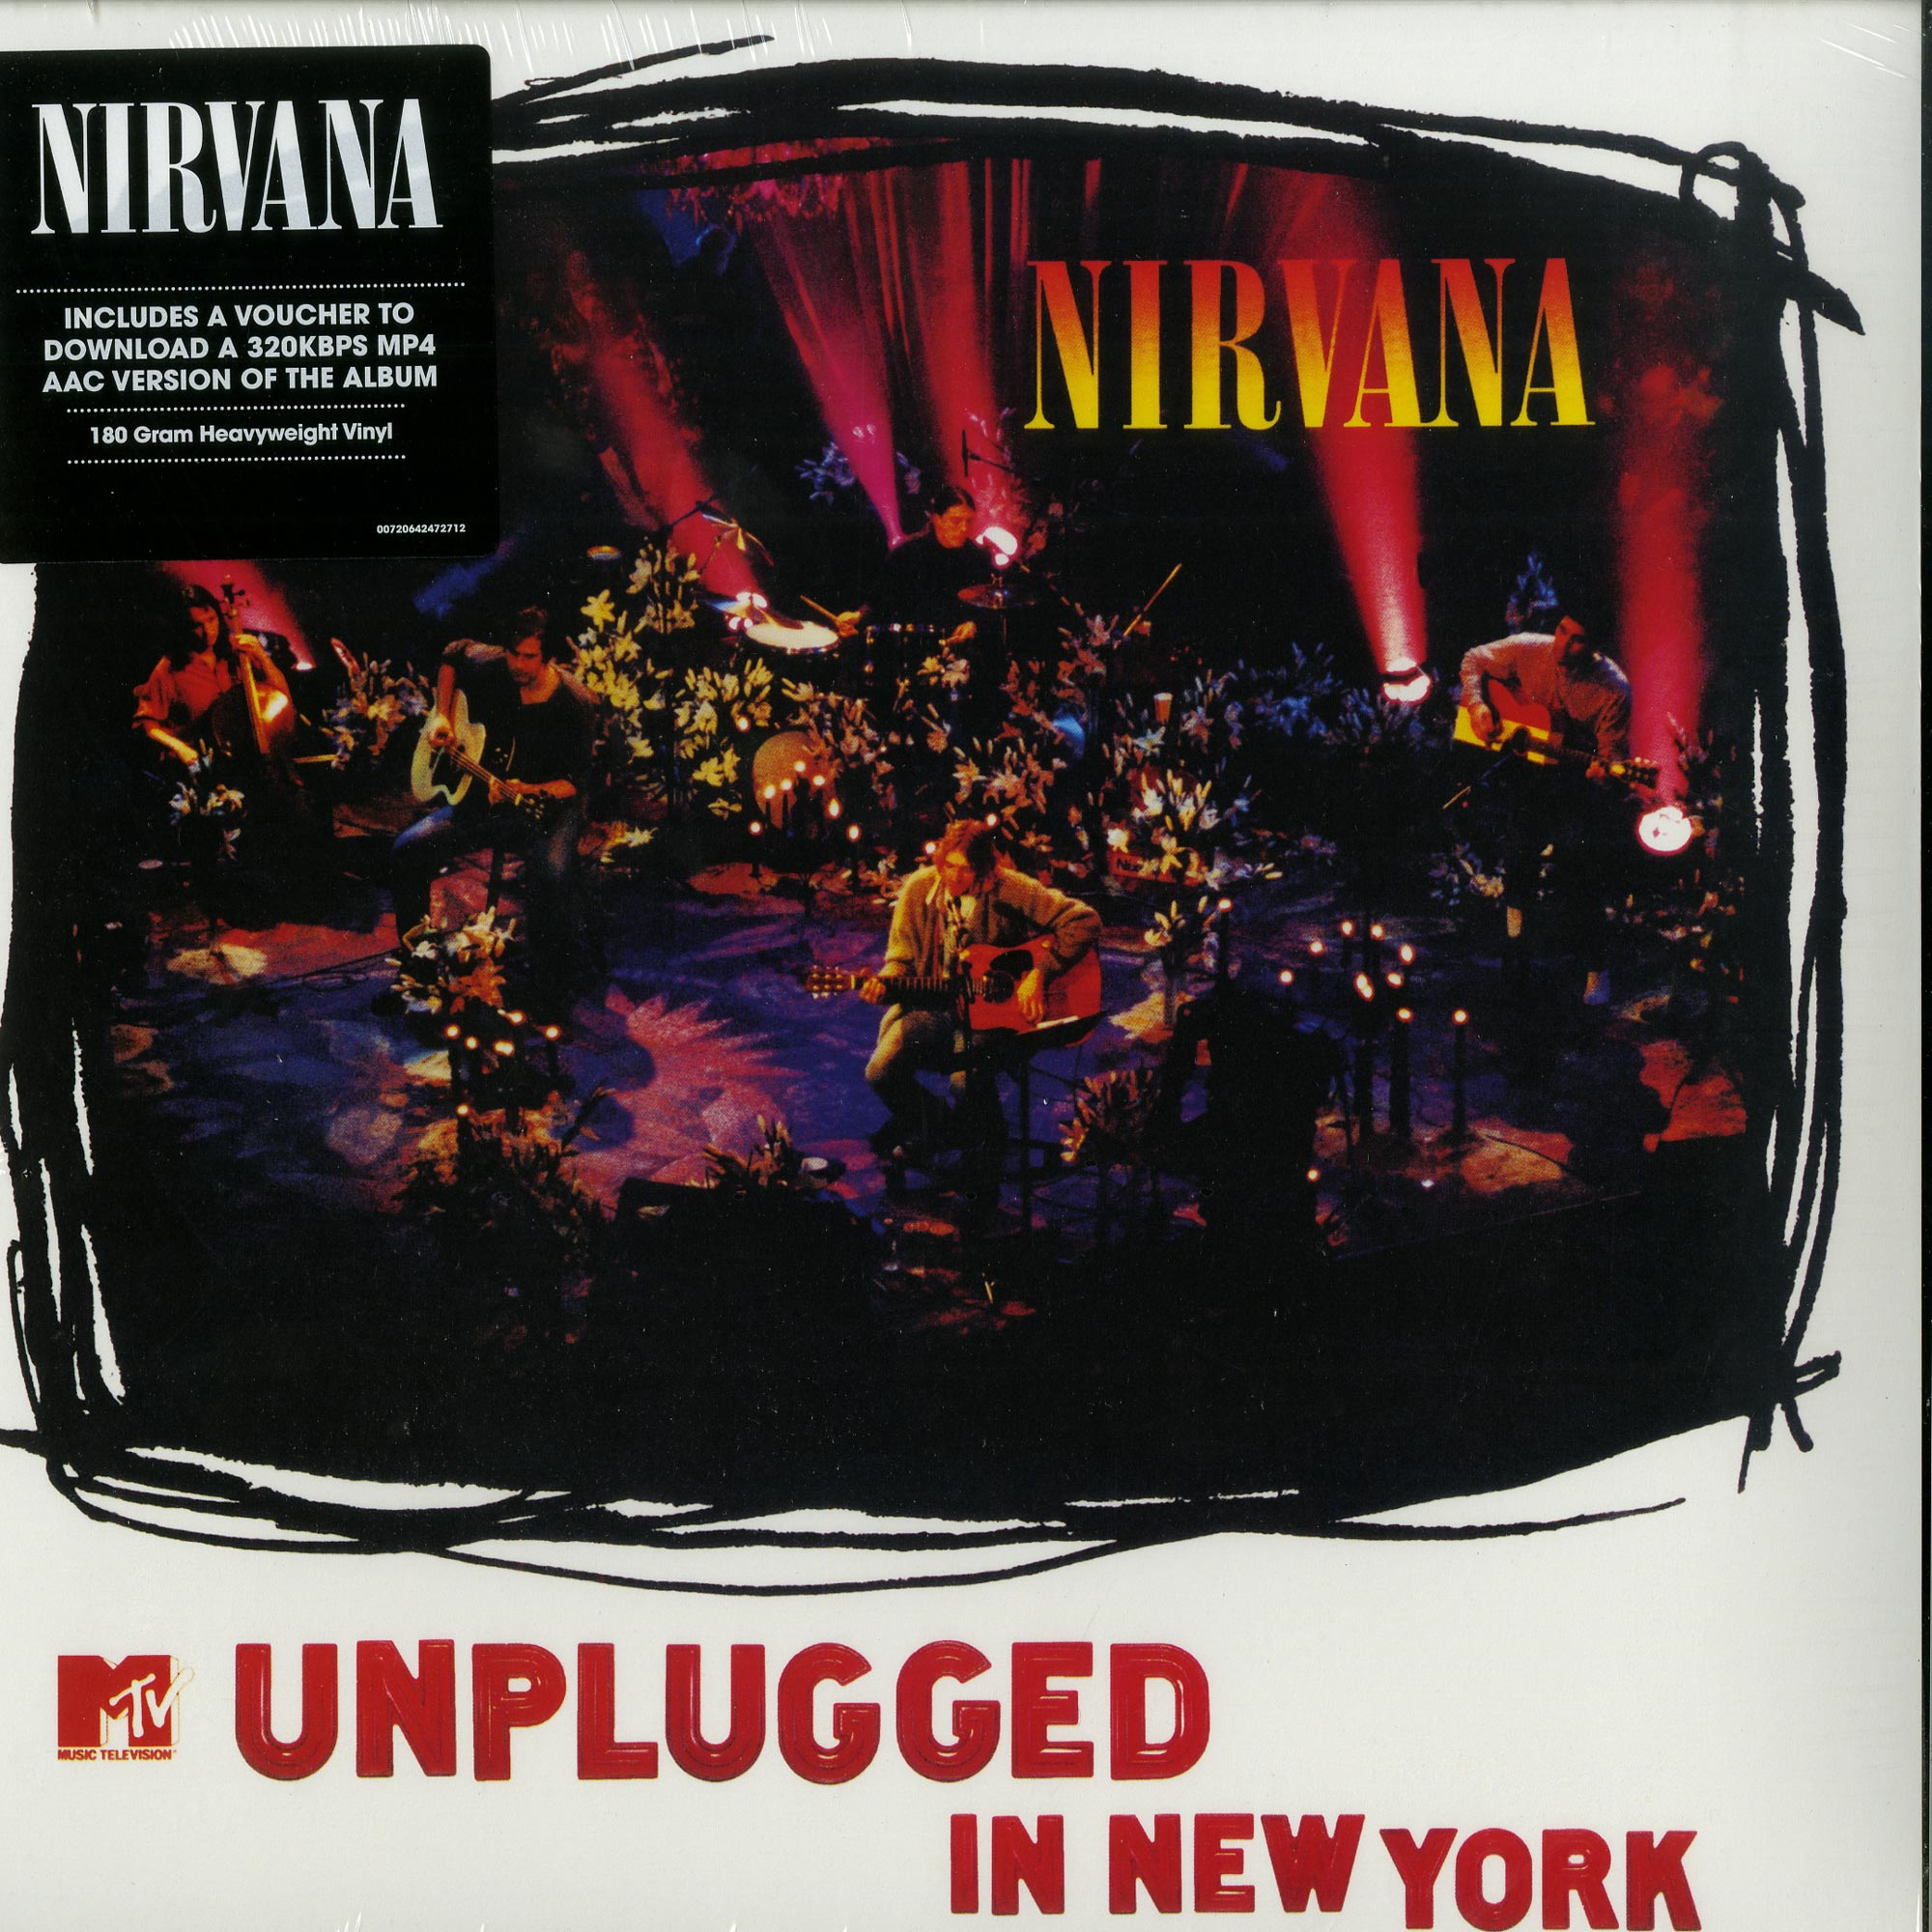 NIRVANA - MTV UNPLUGGED IN NEW YORK - VINYL LP - Wah Wah Records